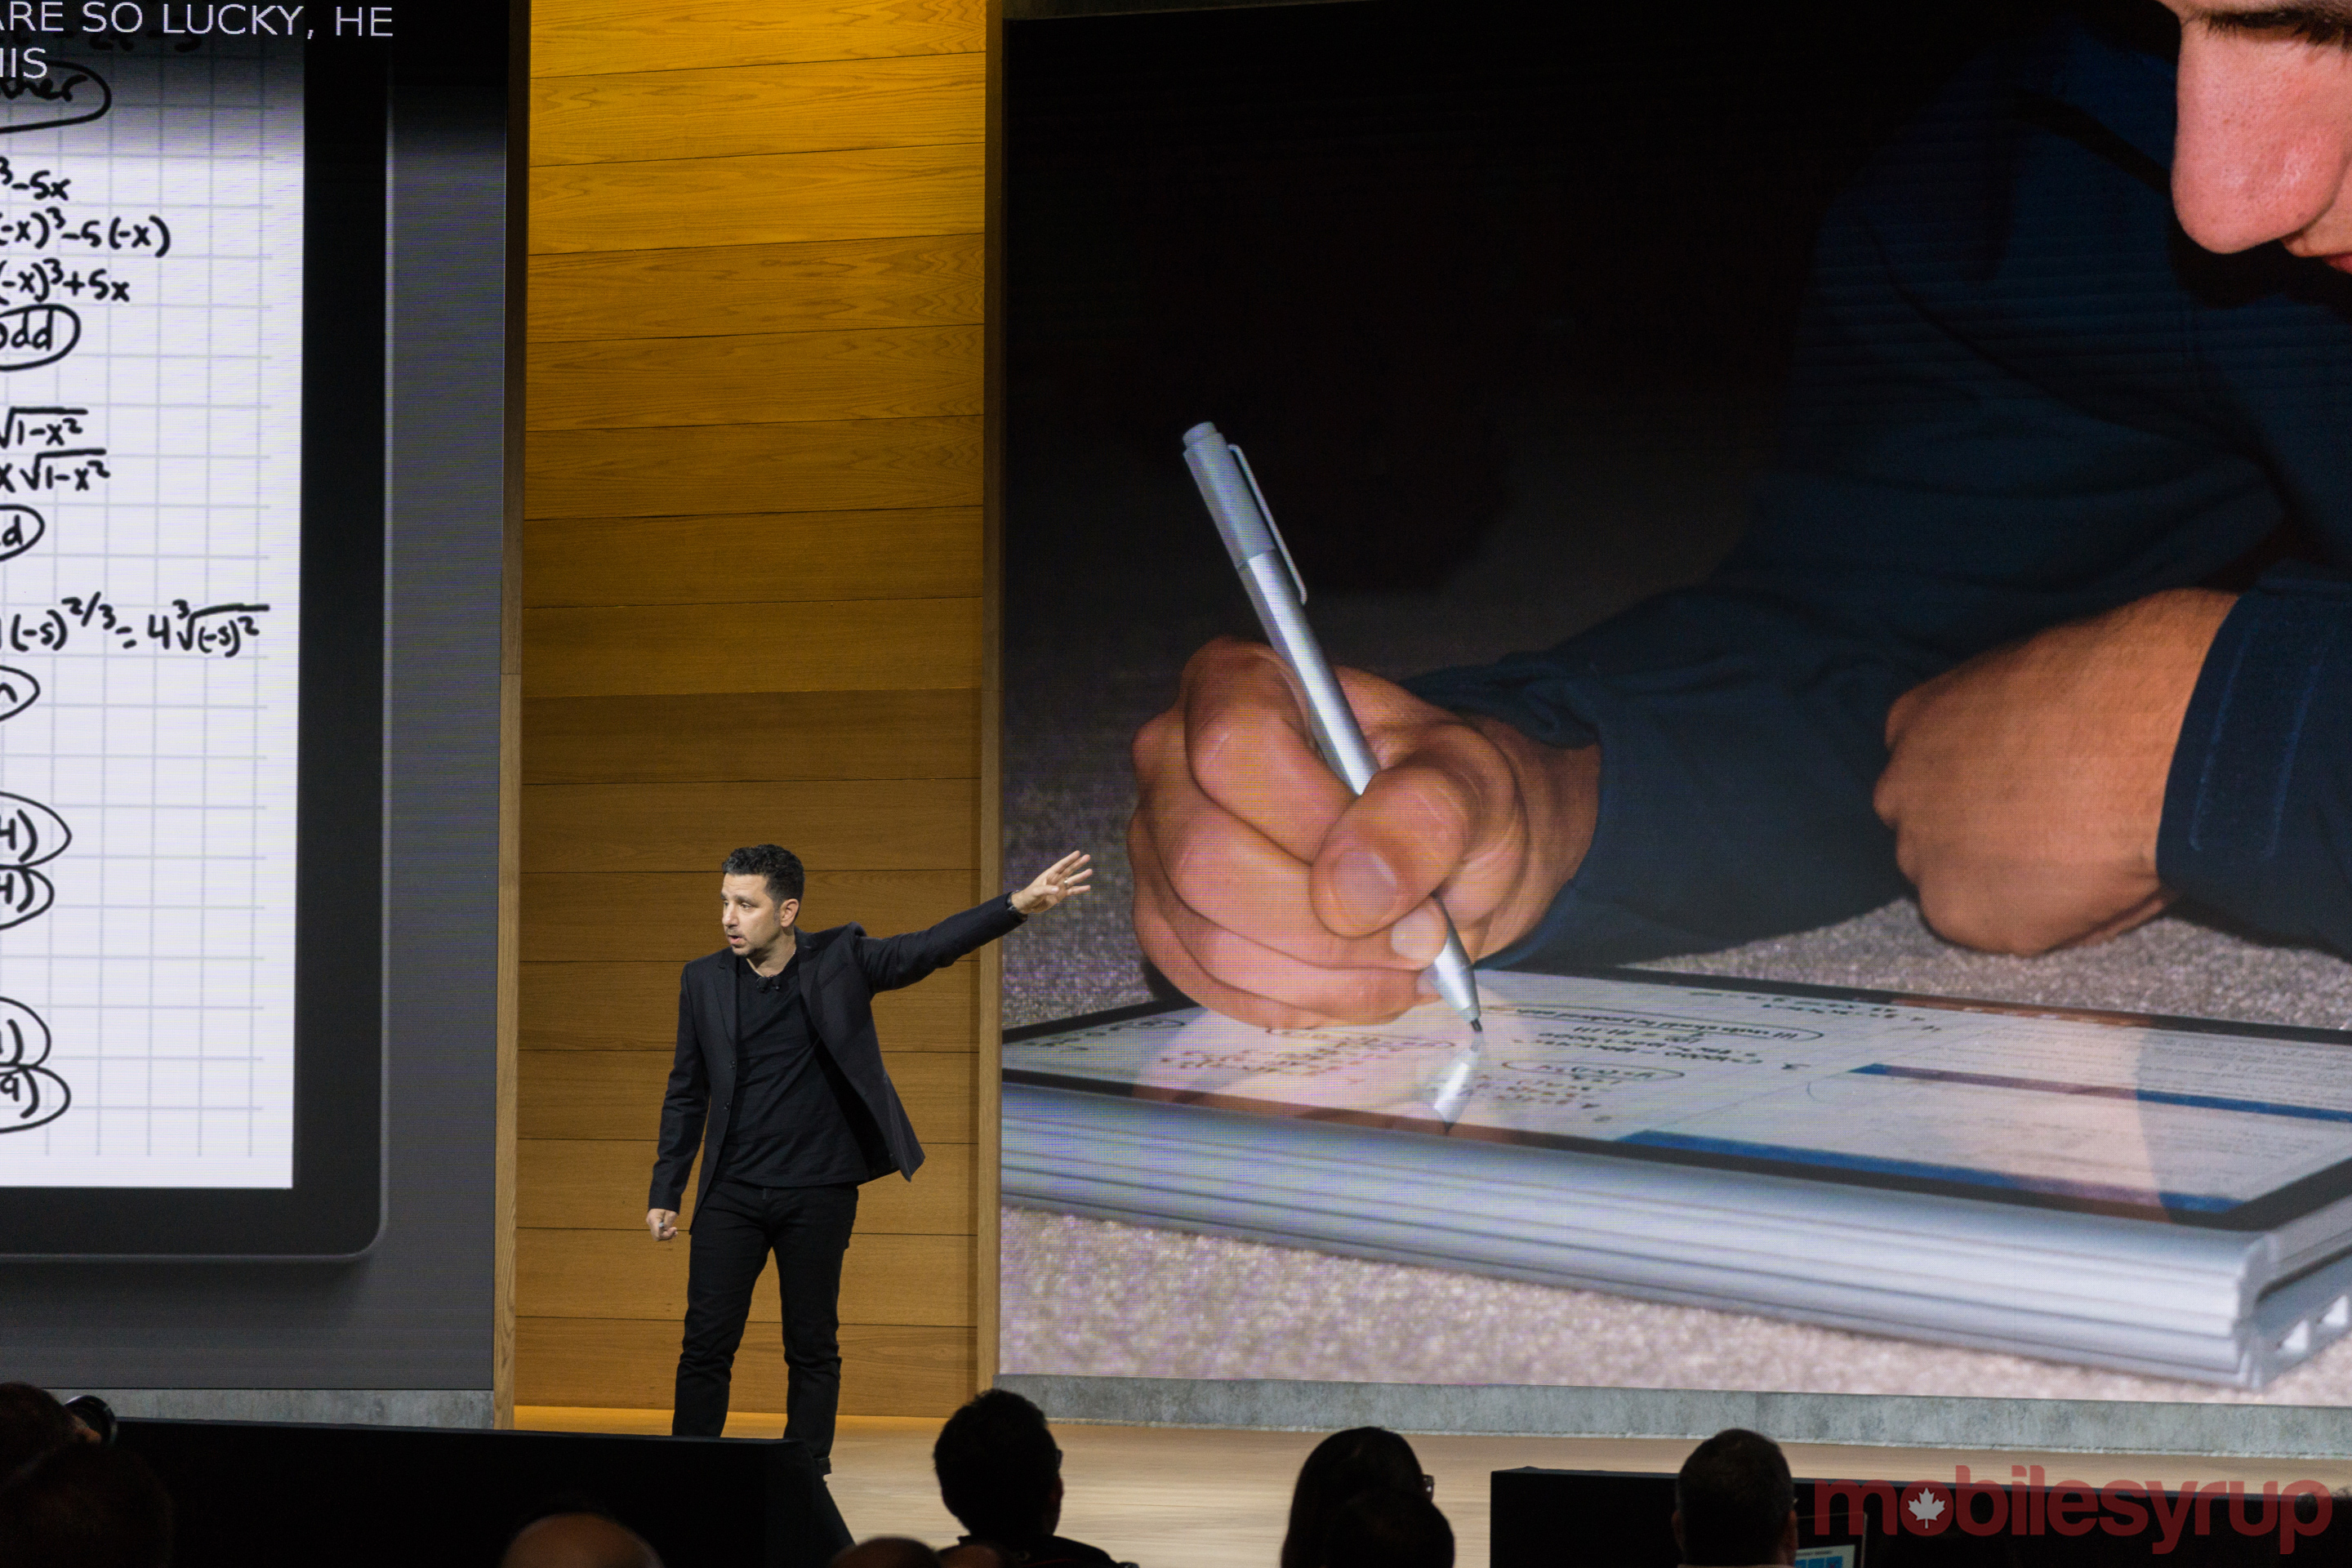 Microsoft announces new Surface Book i7 with major graphics boost